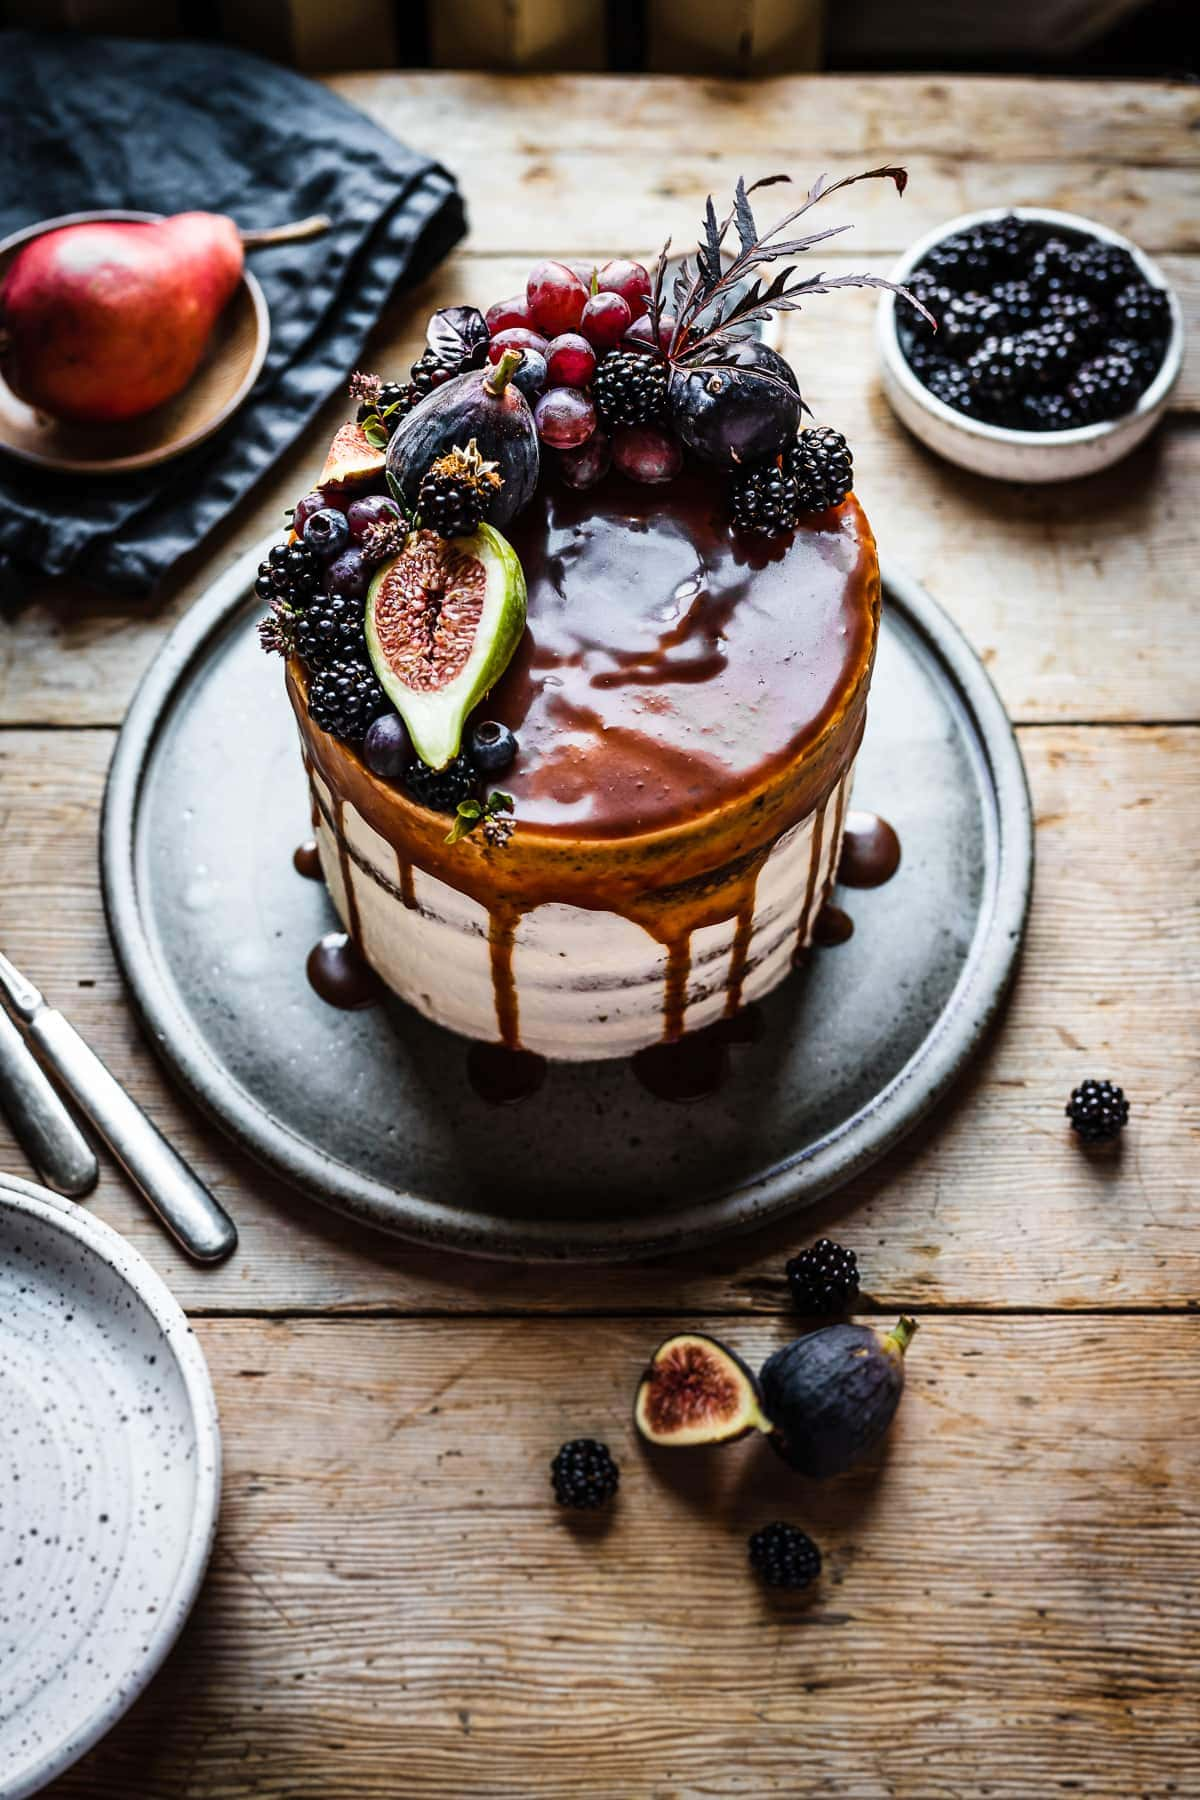 A white frosted layer cake with a caramel drip and a crown of late summer fruit on top. The cake sits on a blue grey ceramic platter on a rustic wooden table with forks and small bowls of poppy seeds and blackberries nearby. The light is coming from behind the cake and makes the caramel on top of the cake shine.